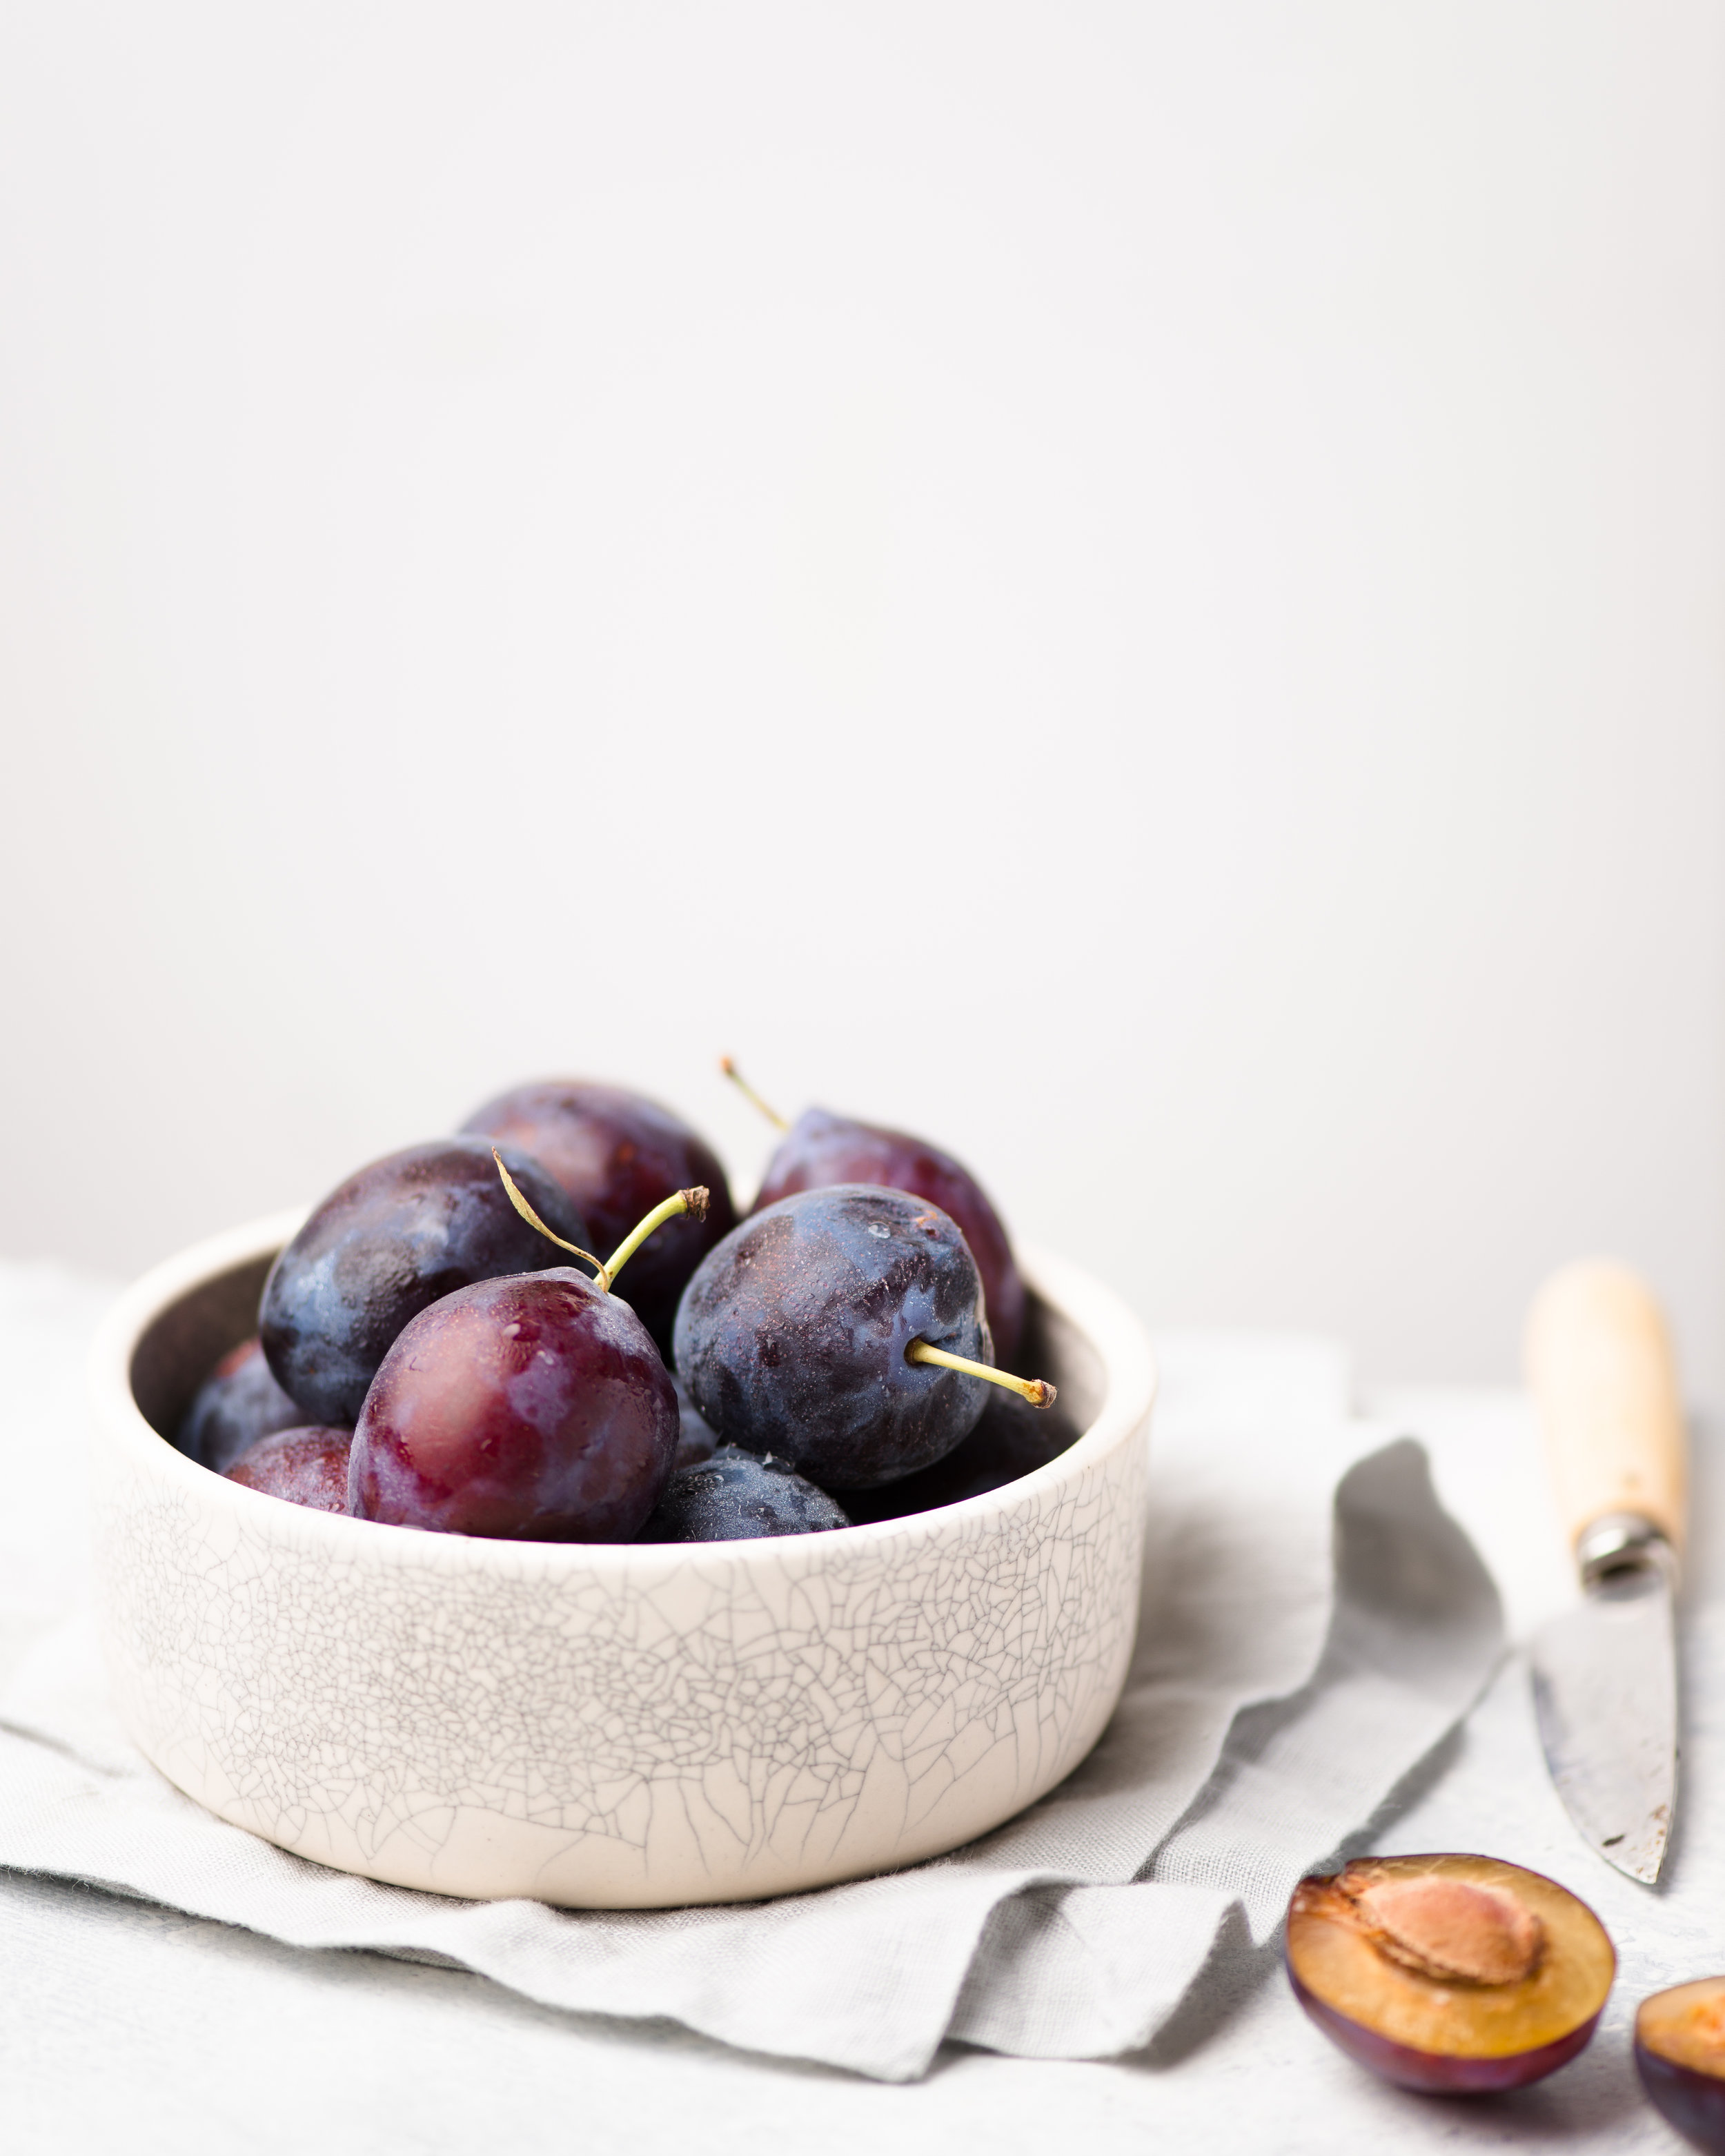 Italian Plums in Ceramic Bowl